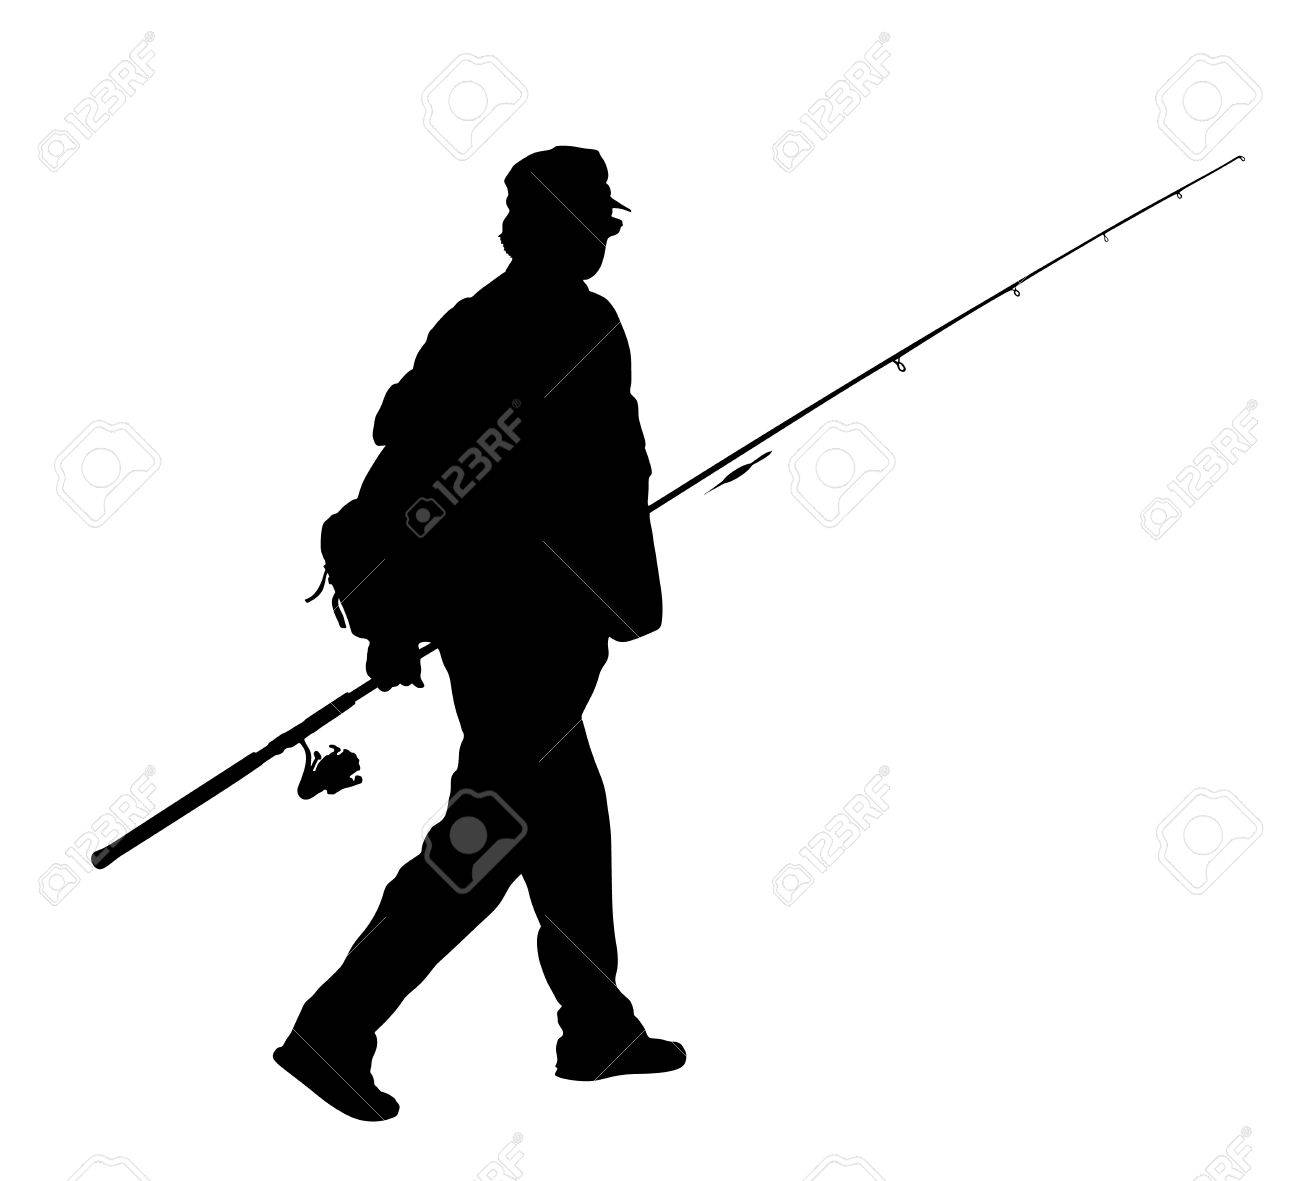 fisherman vector silhouette illustration isolated on white background royalty free cliparts vectors and stock illustration image 72179982 fisherman vector silhouette illustration isolated on white background